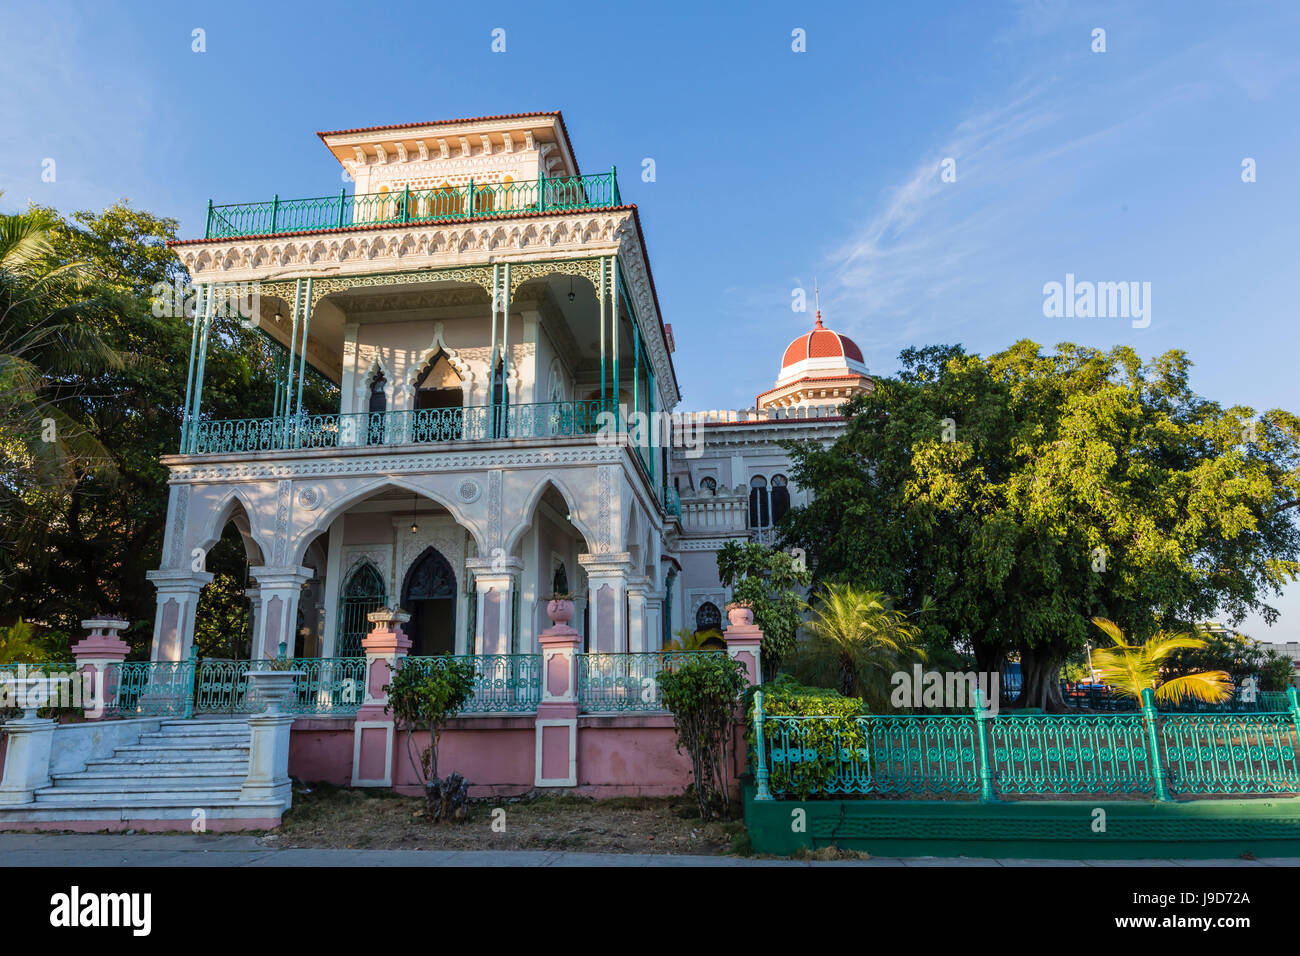 Exterior view of Palacio de Valle (Valle's Palace), Punta Gorda, Cienfuegos, Cuba, West Indies, Caribbean, Central - Stock Image